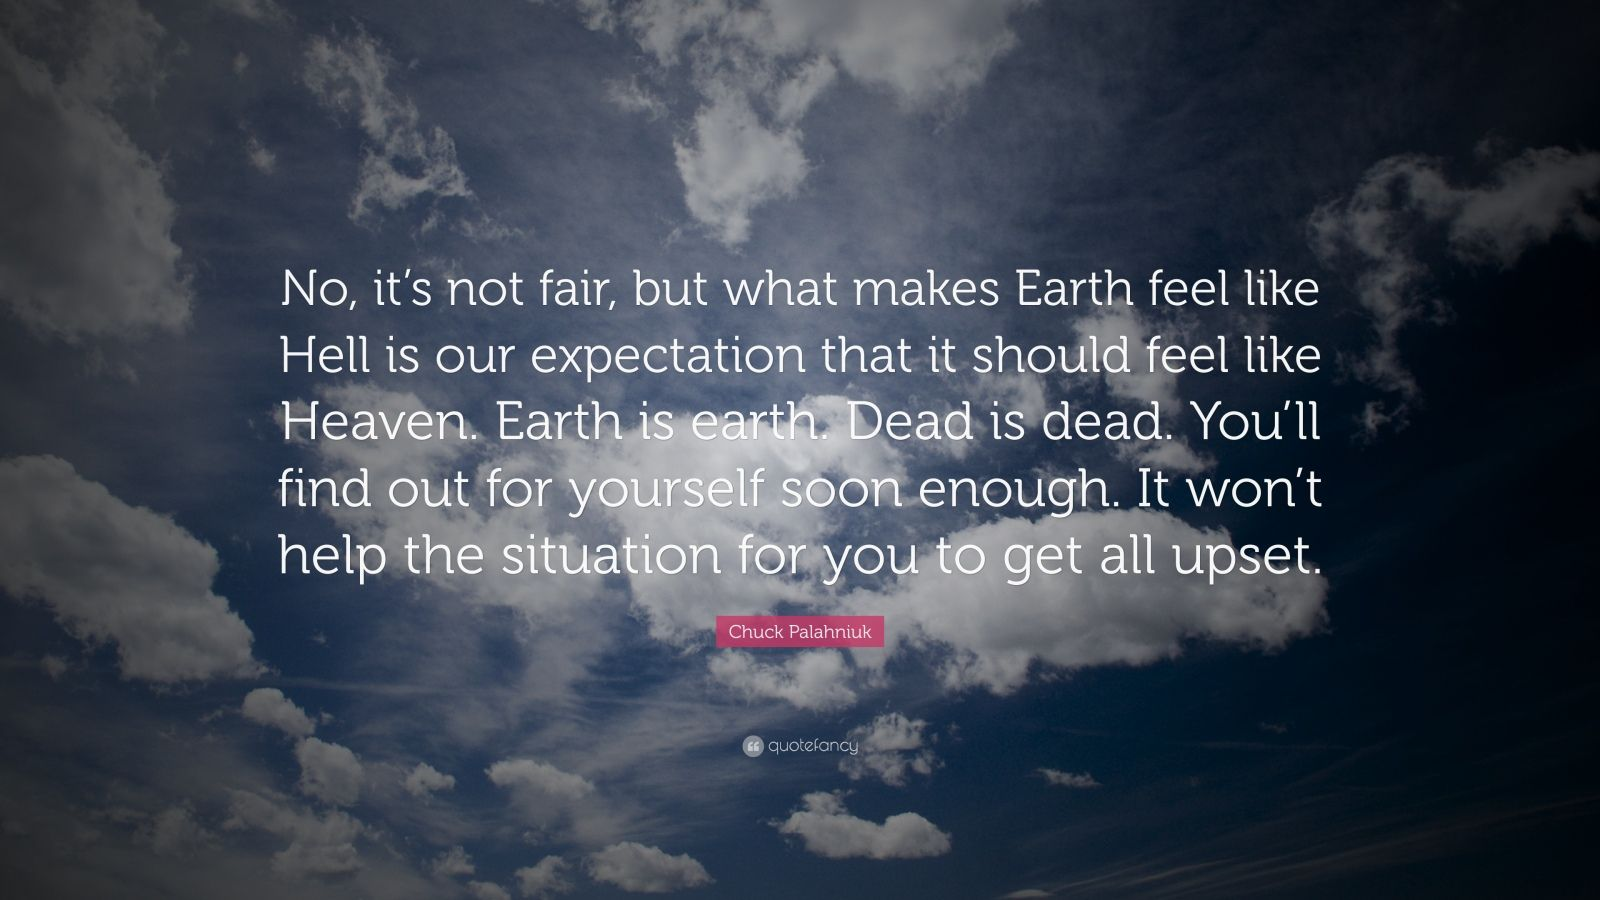 "Chuck Palahniuk Quote: ""No, it's not fair, but what makes Earth feel like Hell is our expectation that it should feel like Heaven. Earth is earth. Dead is dead. You'll find out for yourself soon enough. It won't help the situation for you to get all upset."""